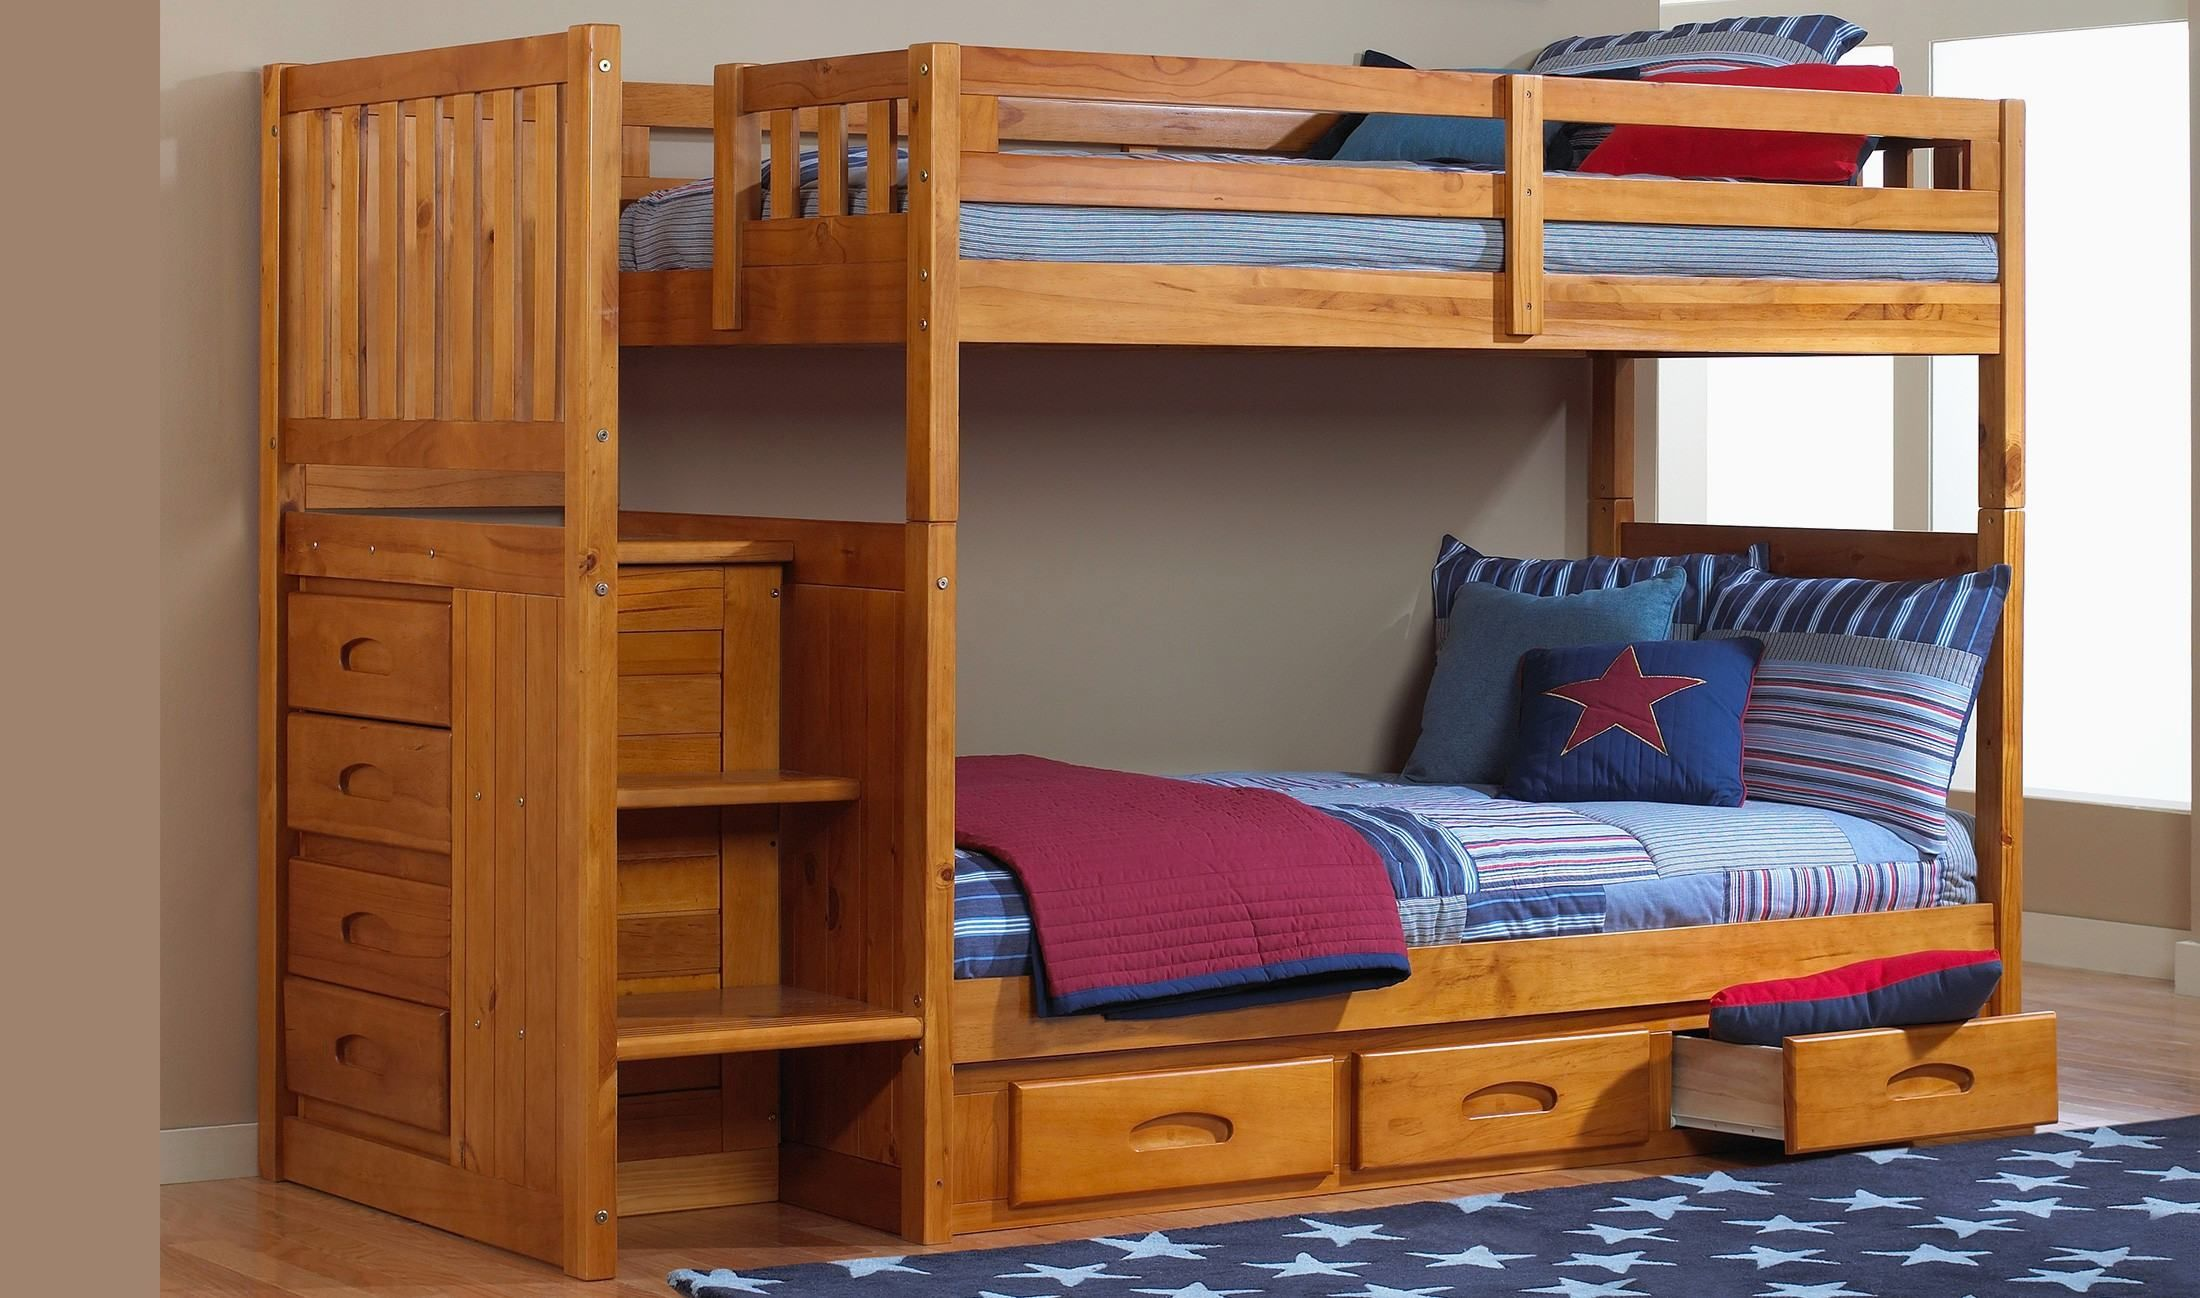 13 Raymour And Flanigan Bunk Beds Most Incredible And Gorgeous Too In 2020 Bunk Bed With Trundle Bunk Beds Modern Bunk Beds